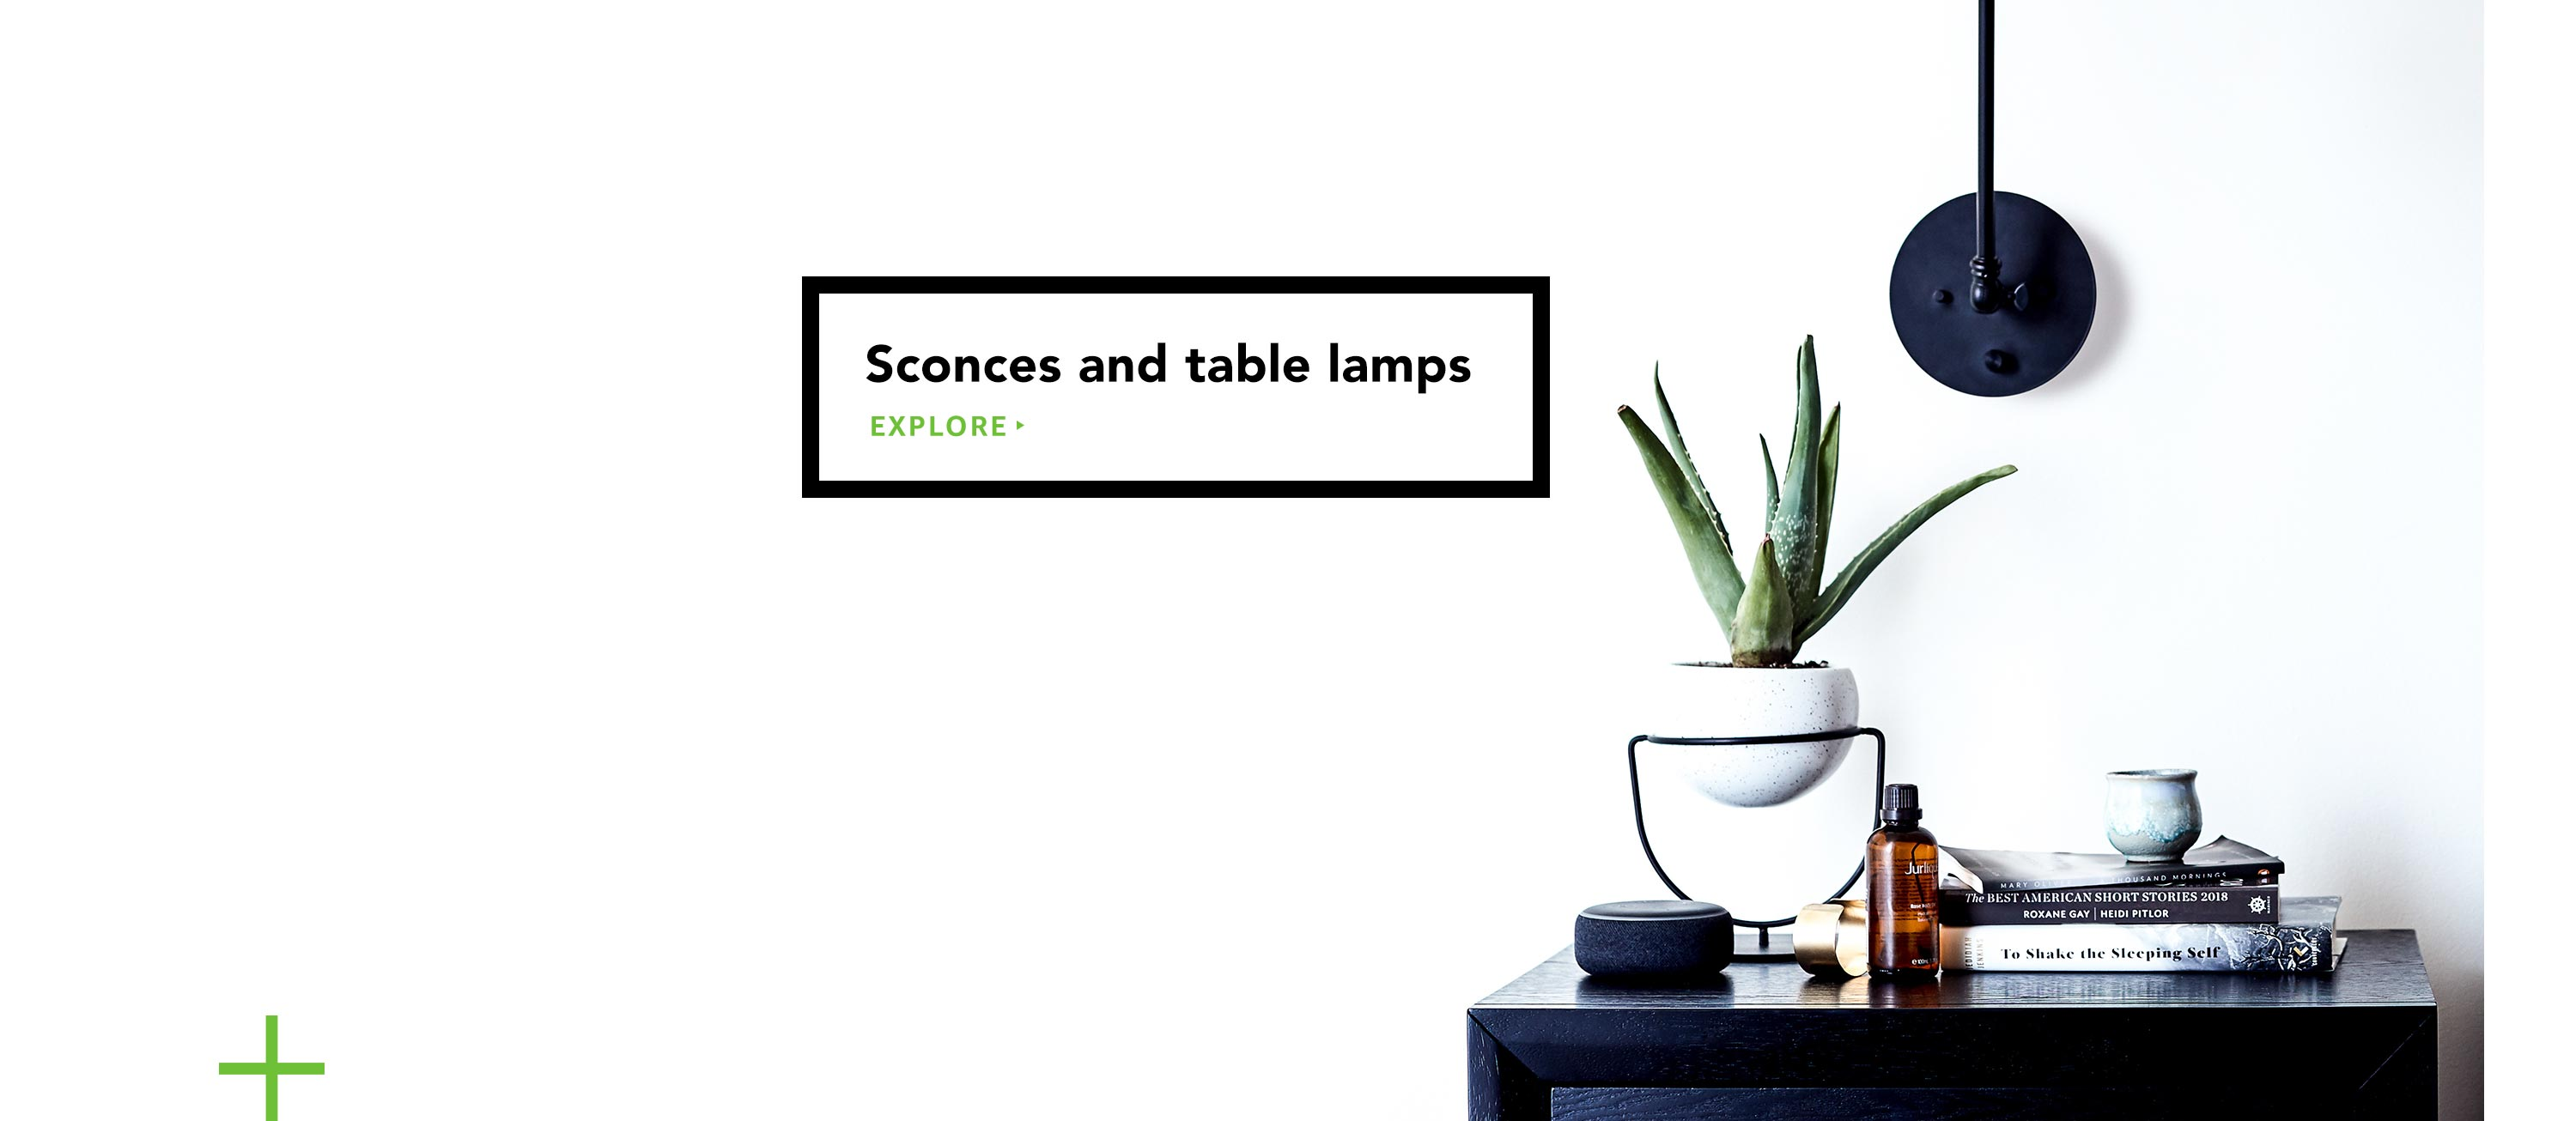 Sconces and table lamps